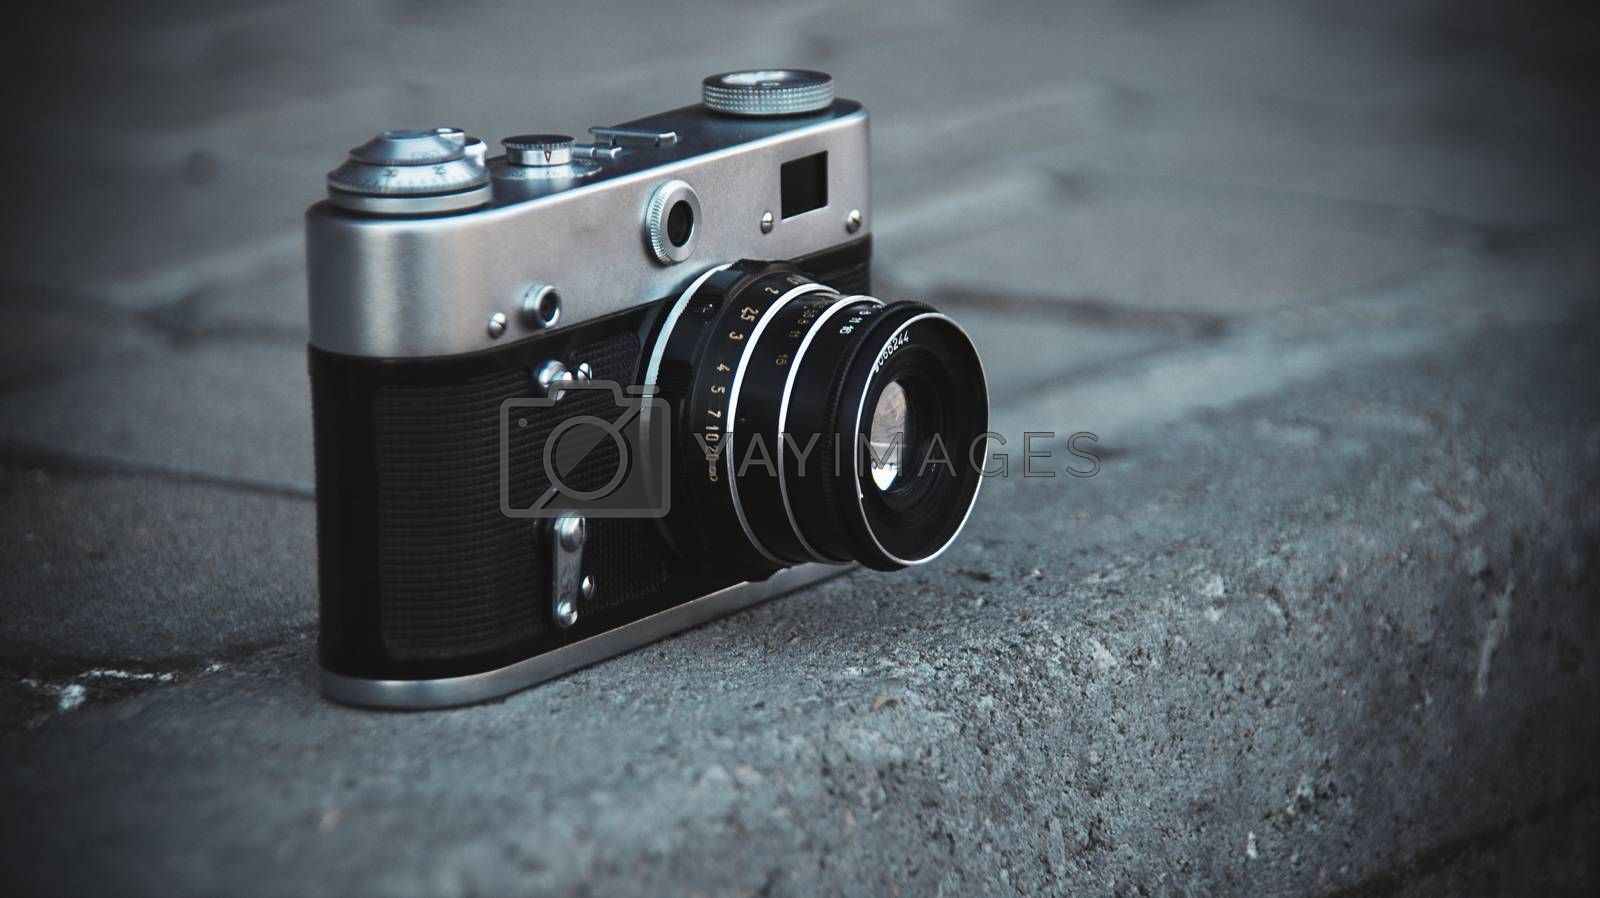 The old film camera is on the ground